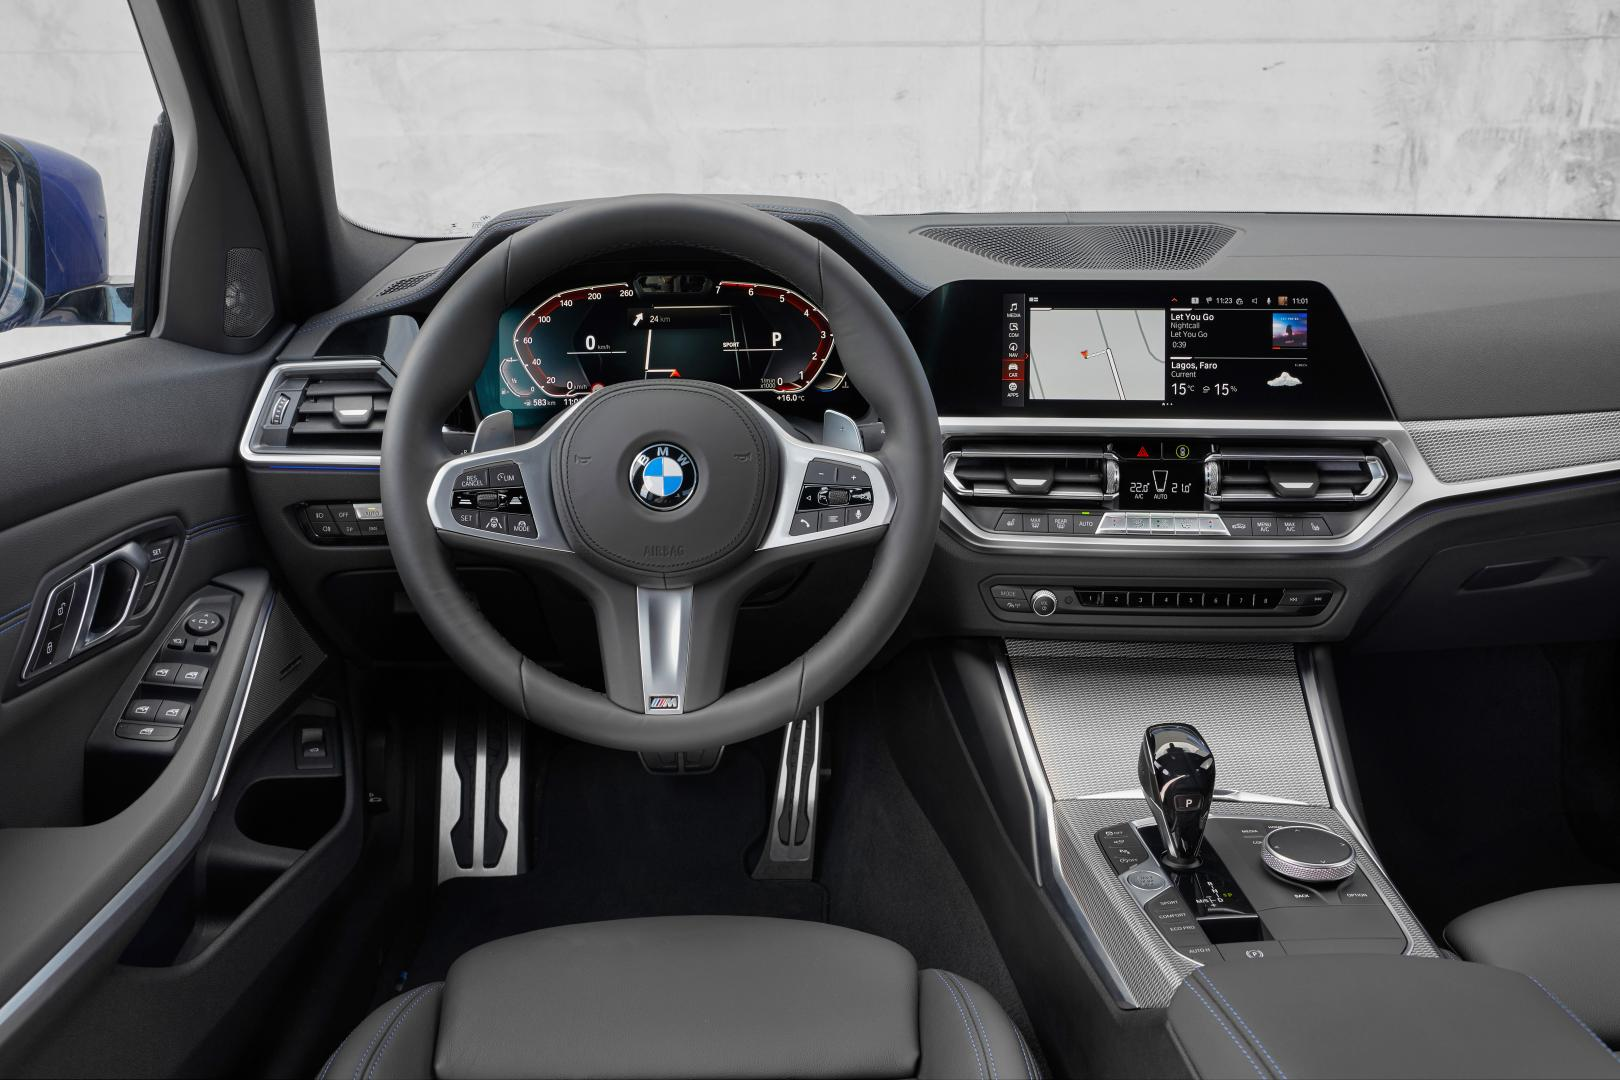 BMW 330i interieur dashboard